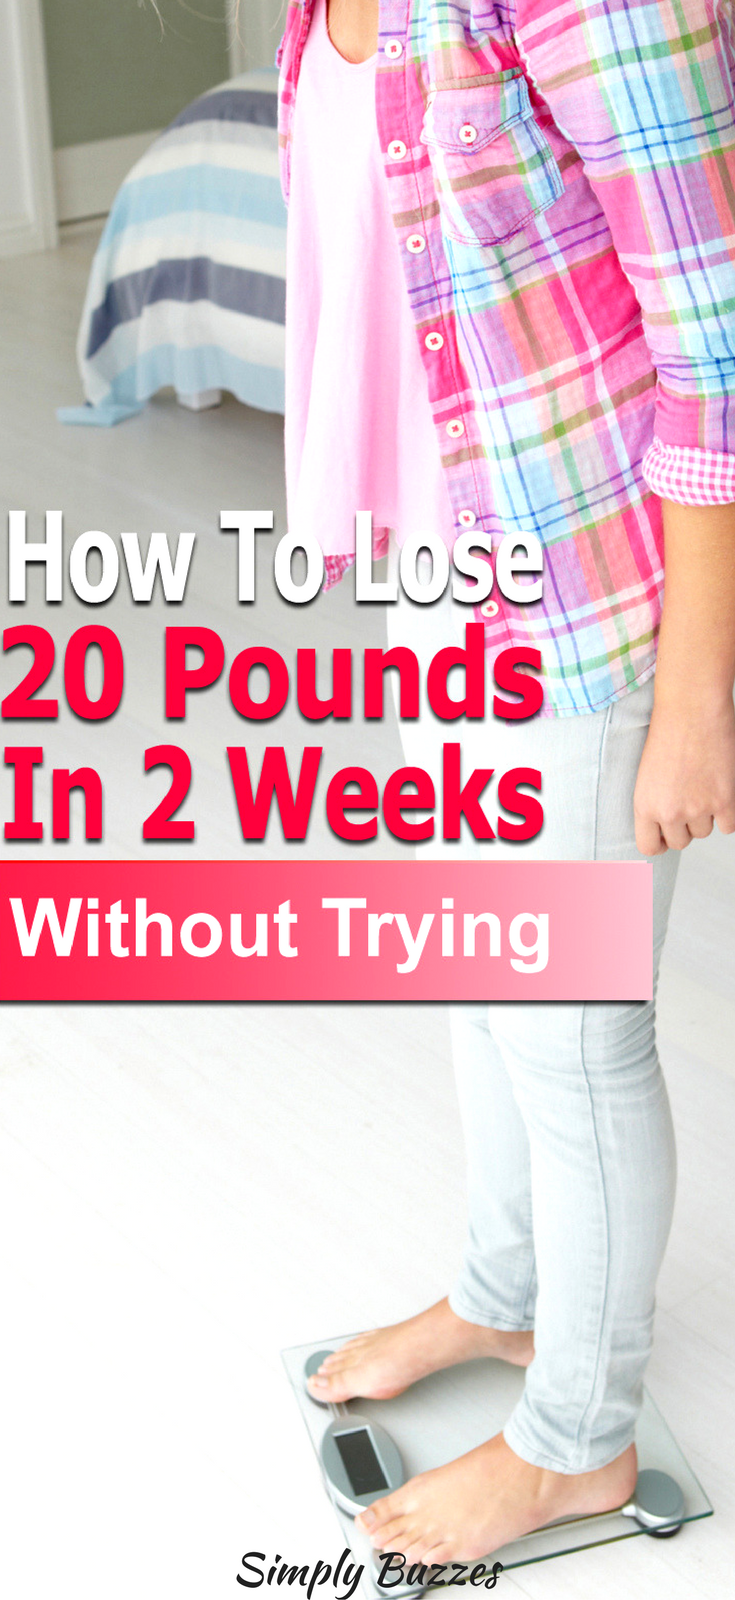 How To Lose 20 Pounds In 2 Weeks Without Trying | How To Lose Weight Fast